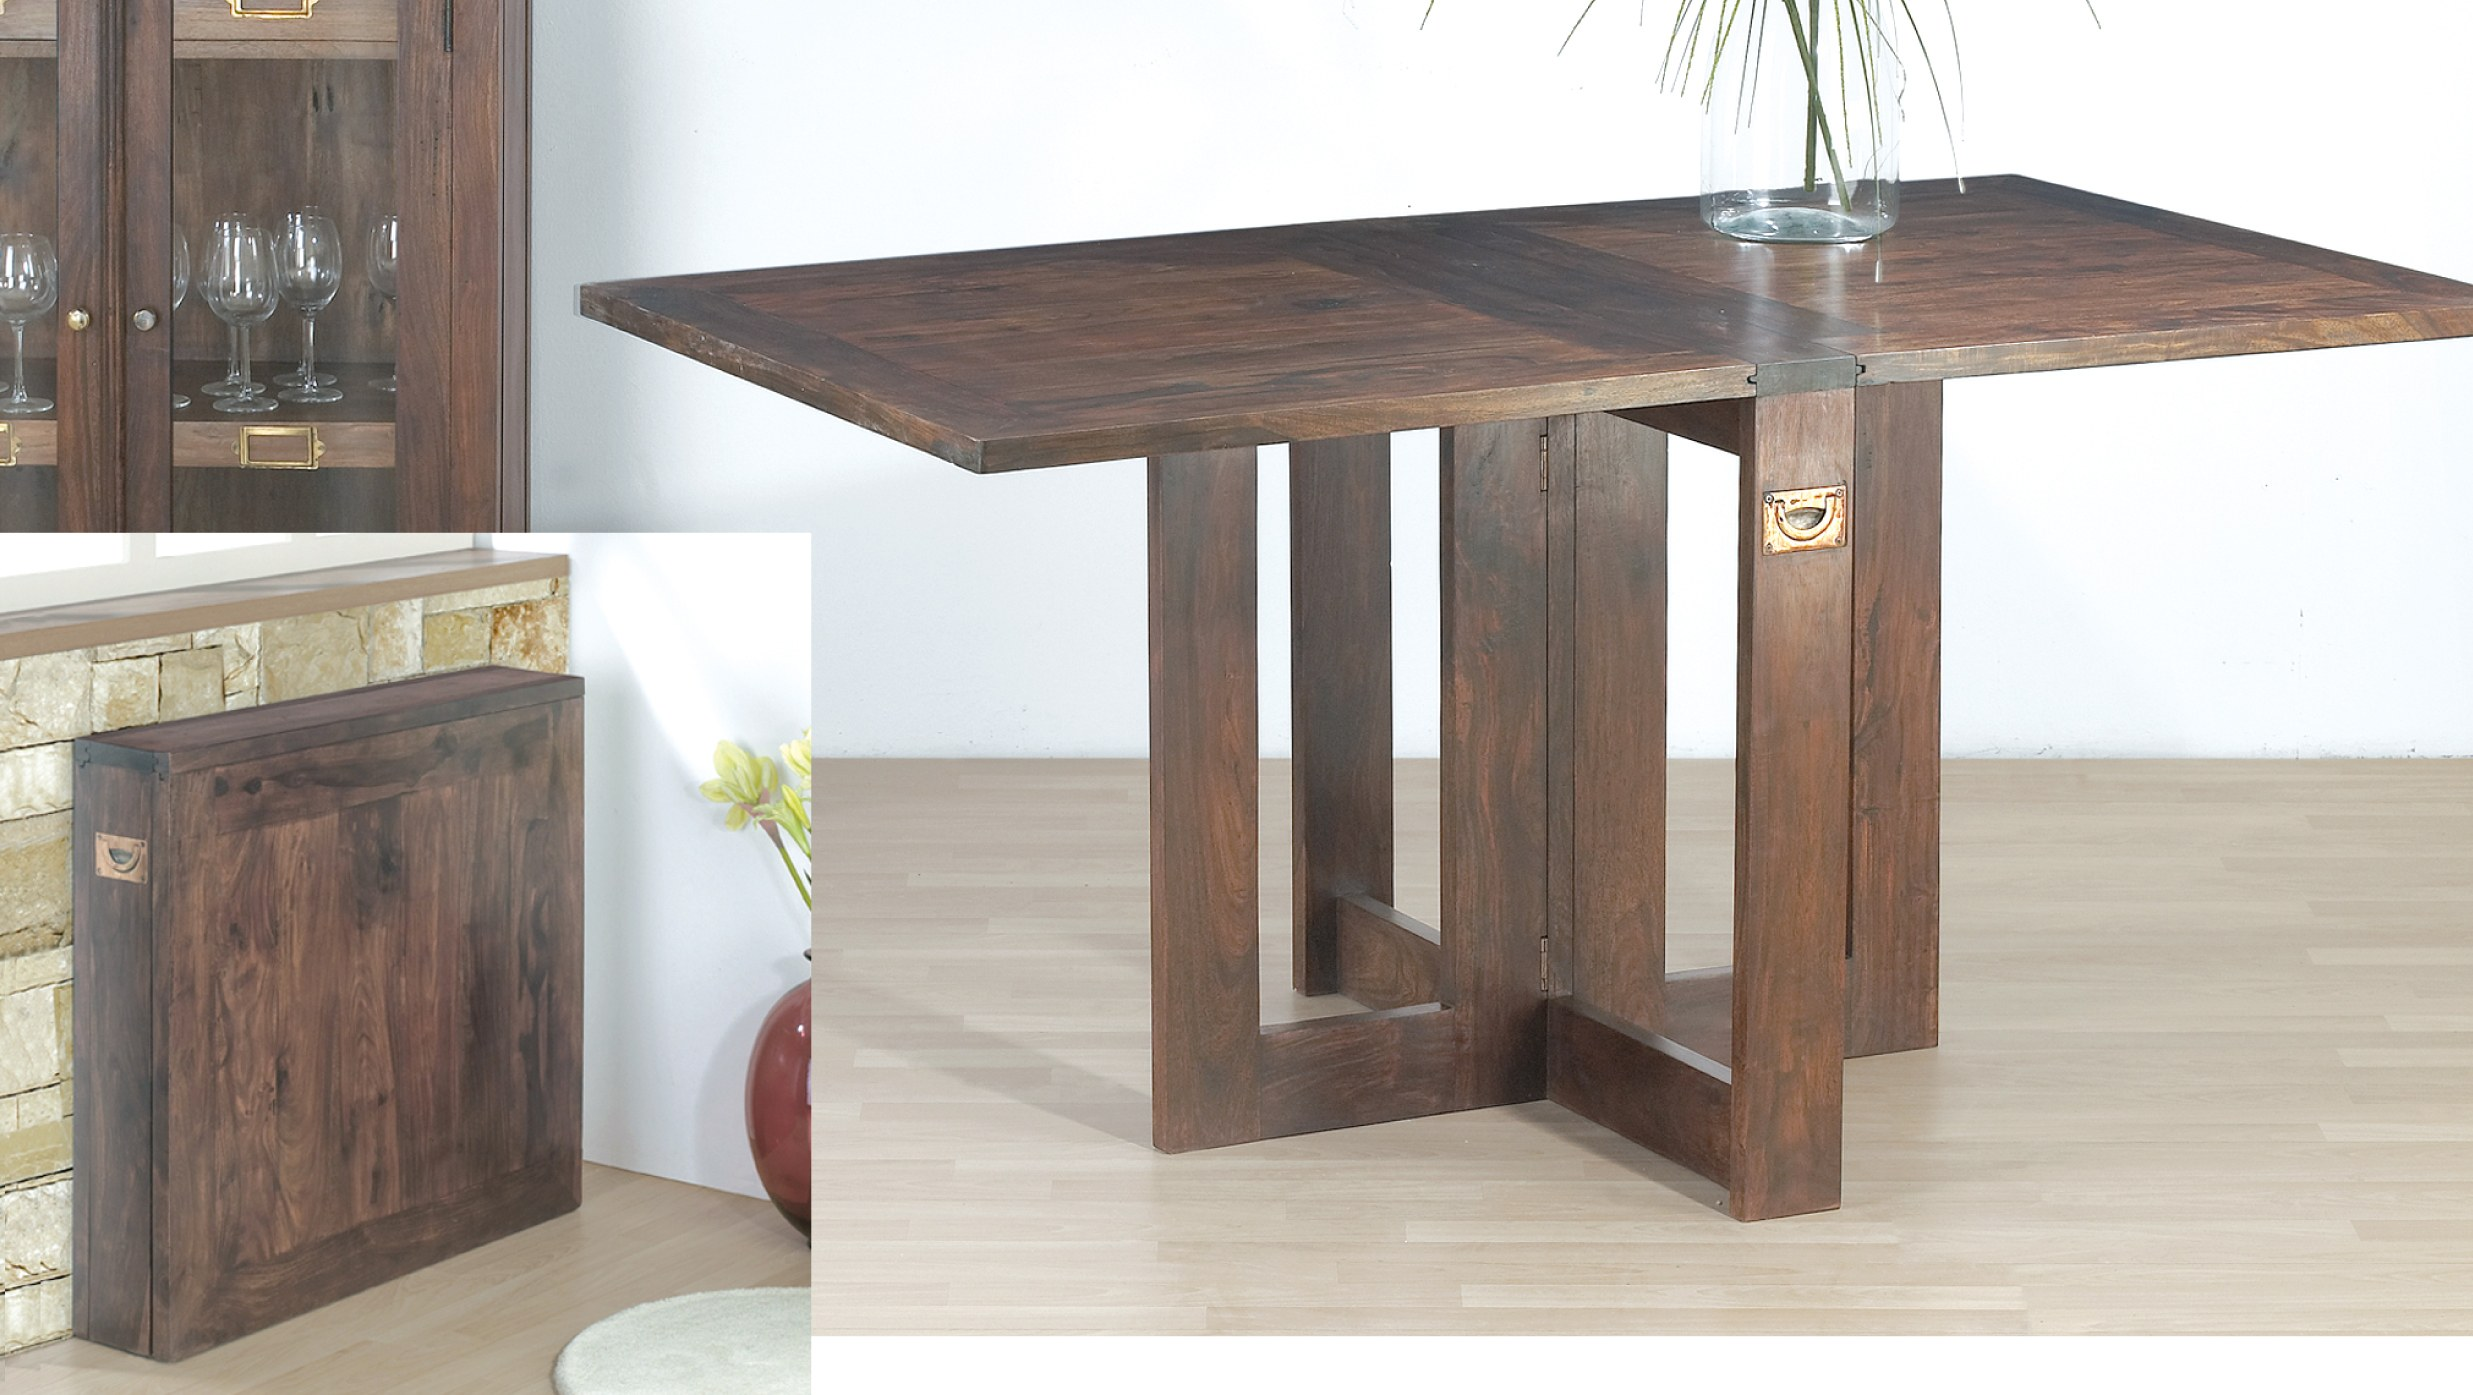 Folding dining table online shopping - Folding dining table ...